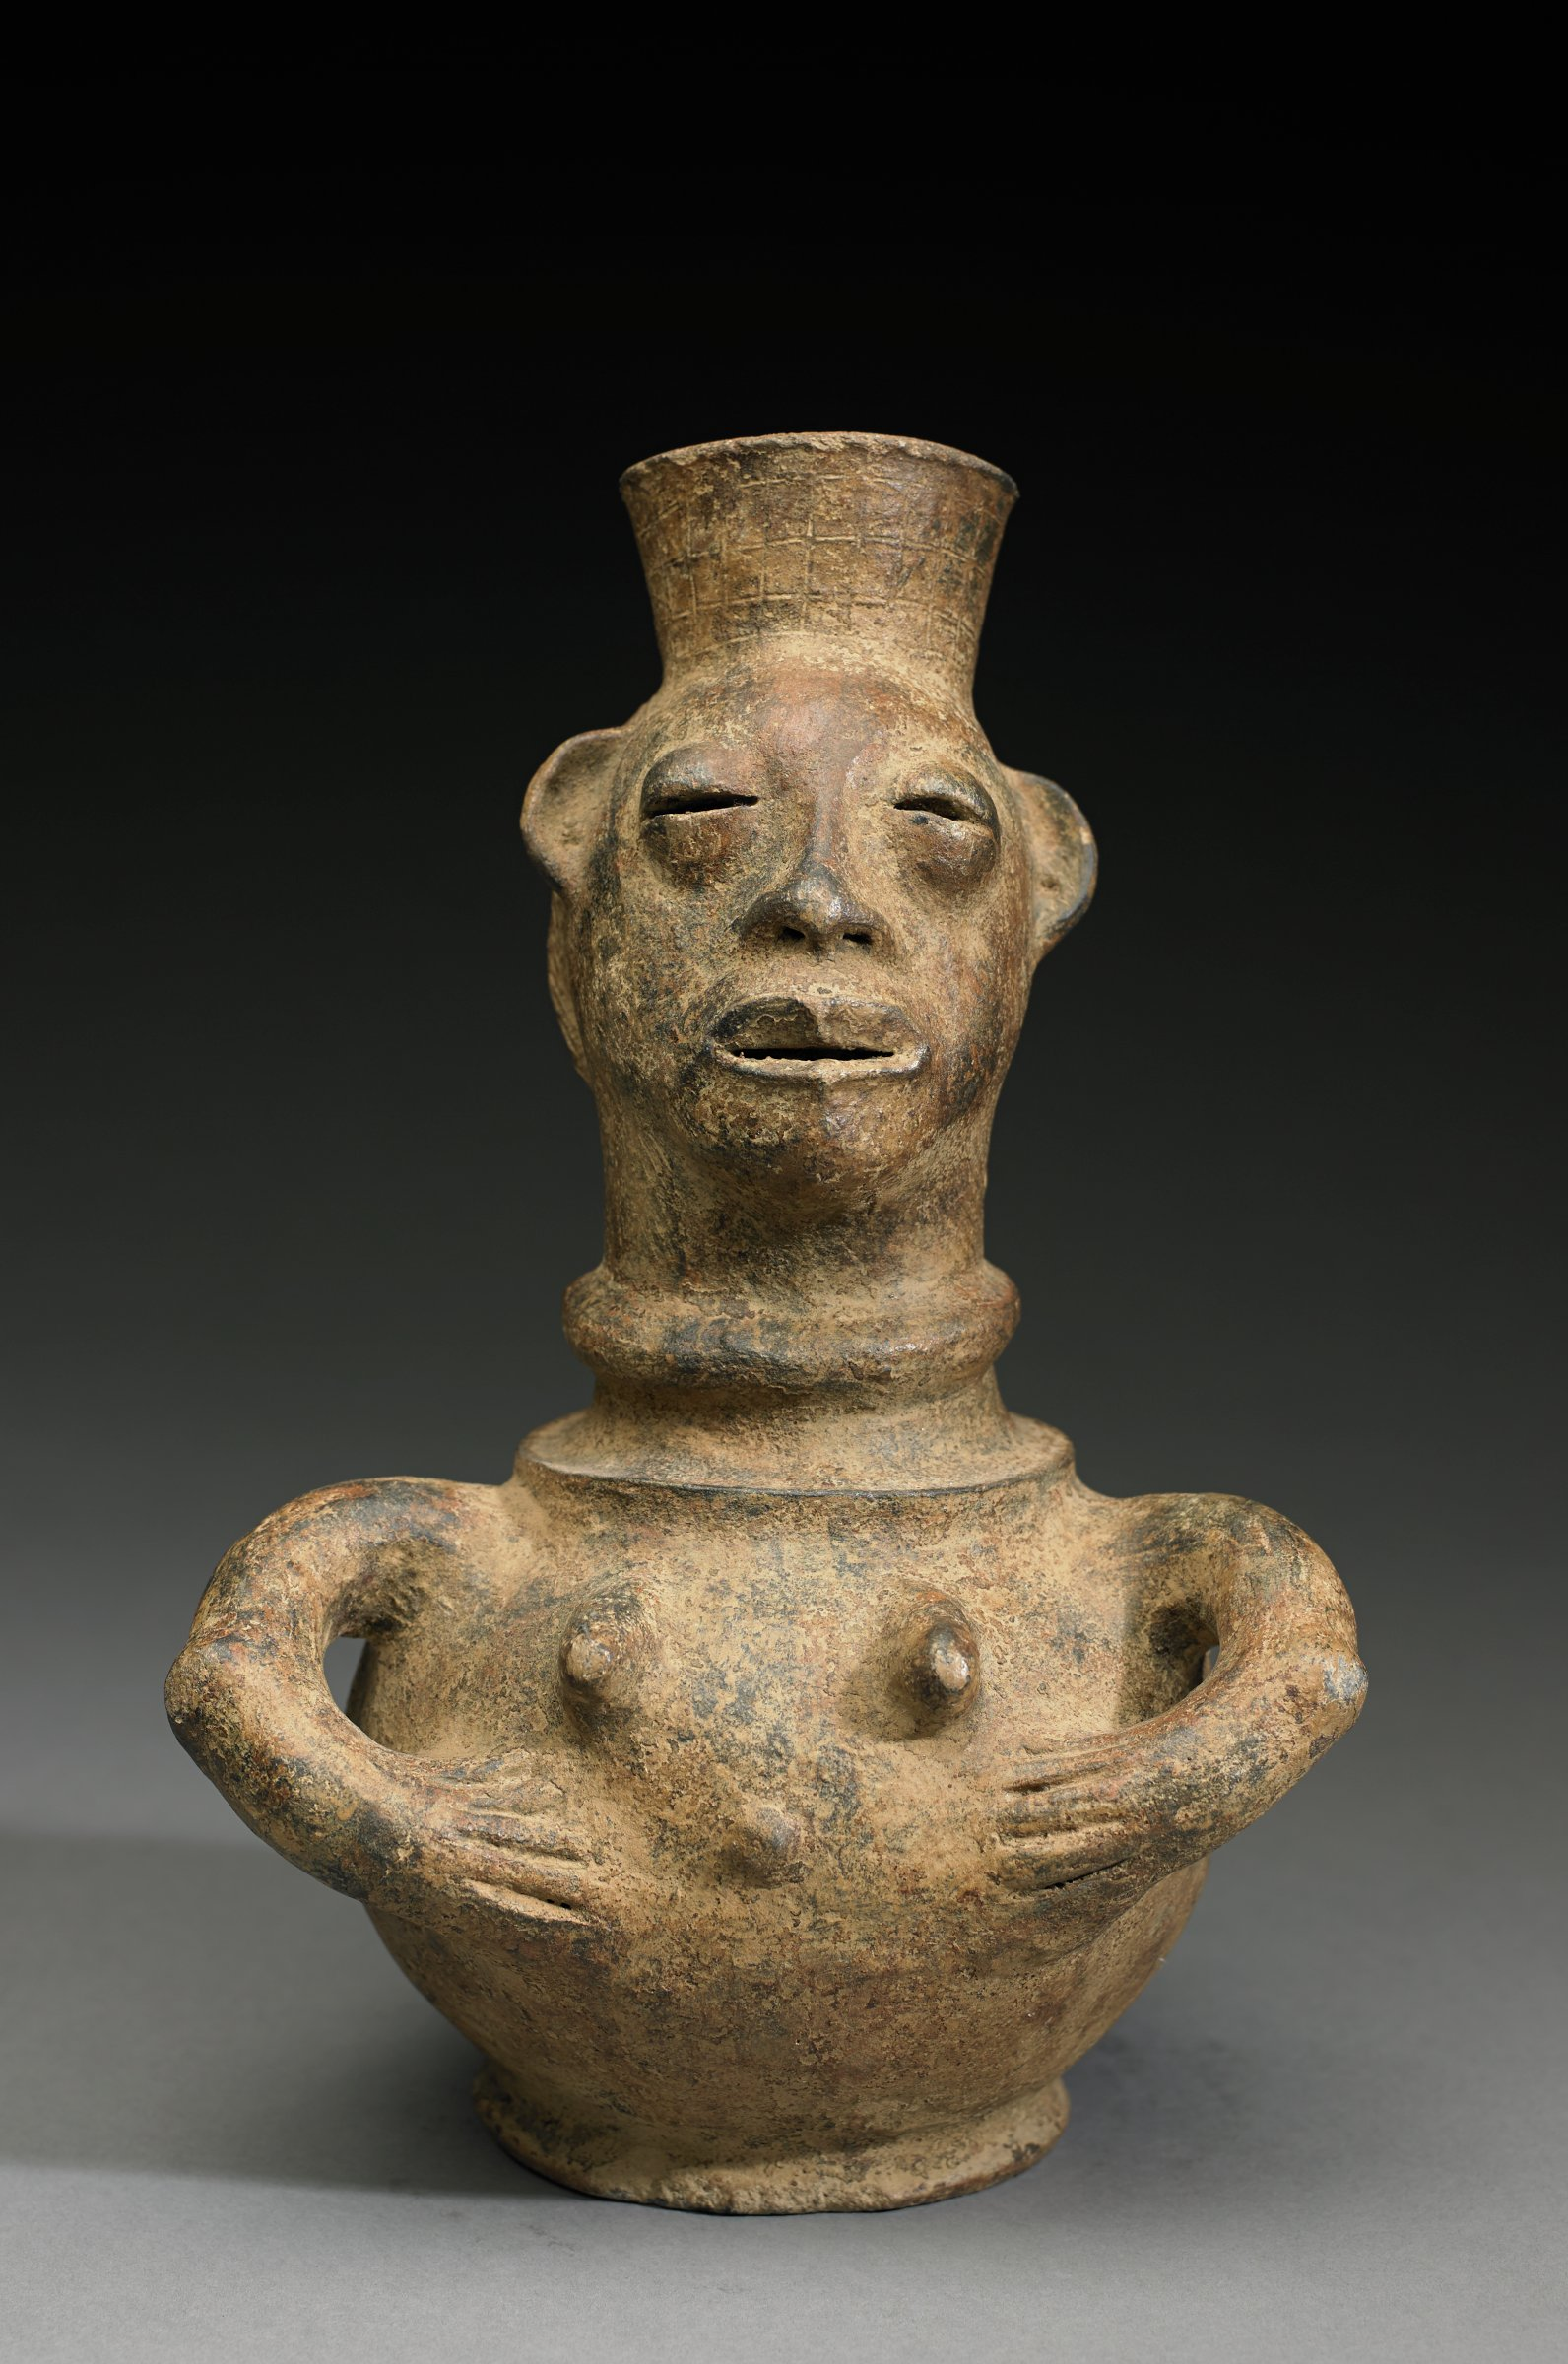 Figurative vessel has curved arms with hands resting on abdomen just below breasts; head has modeled features and plaited hair. Slightly flared opening to vessel rises from top of head.